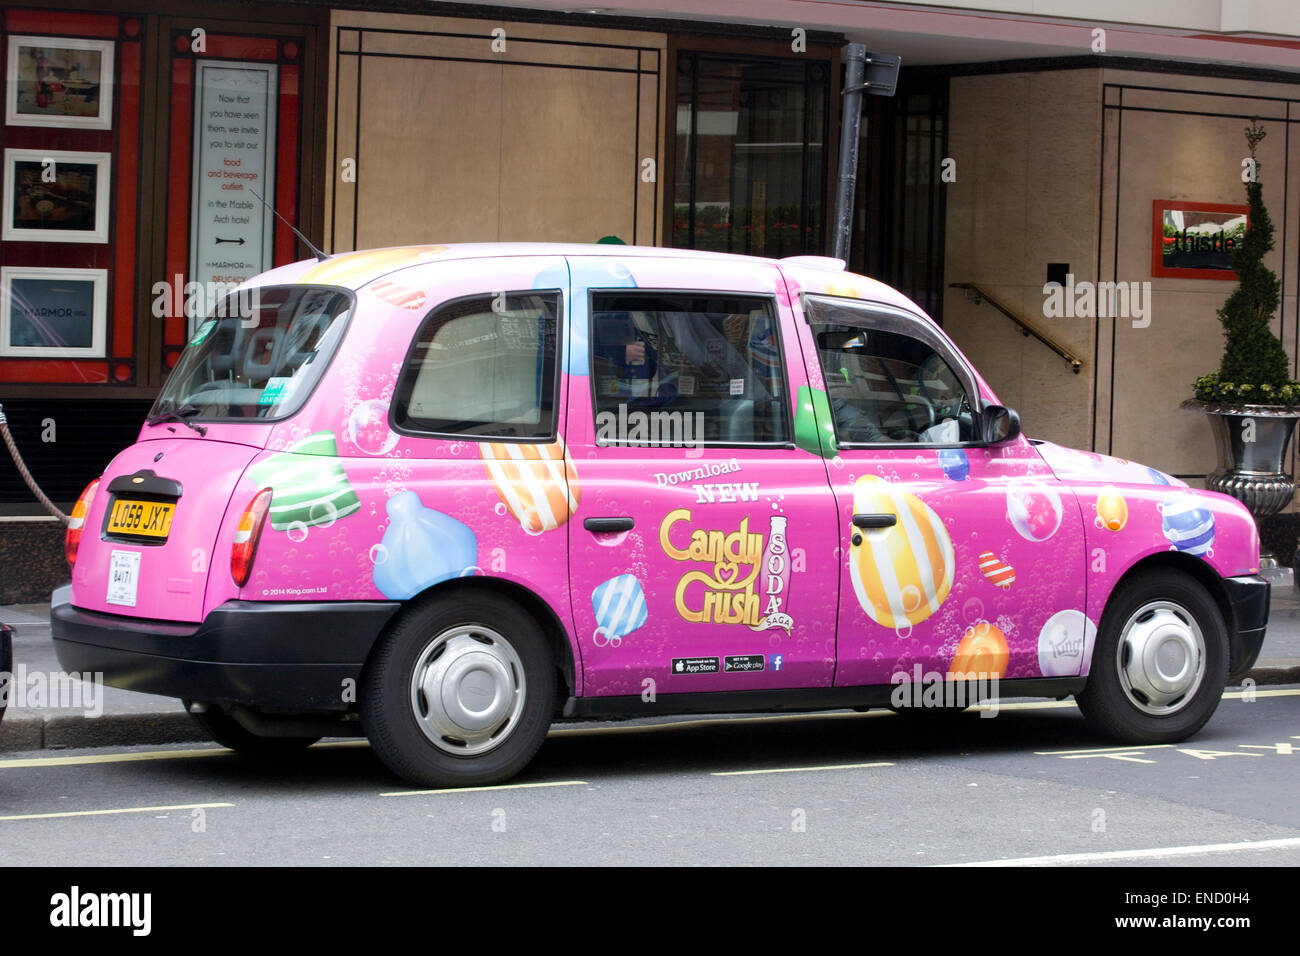 London Hackney Cab sponsored by Candy Crush in London England - Stock Image